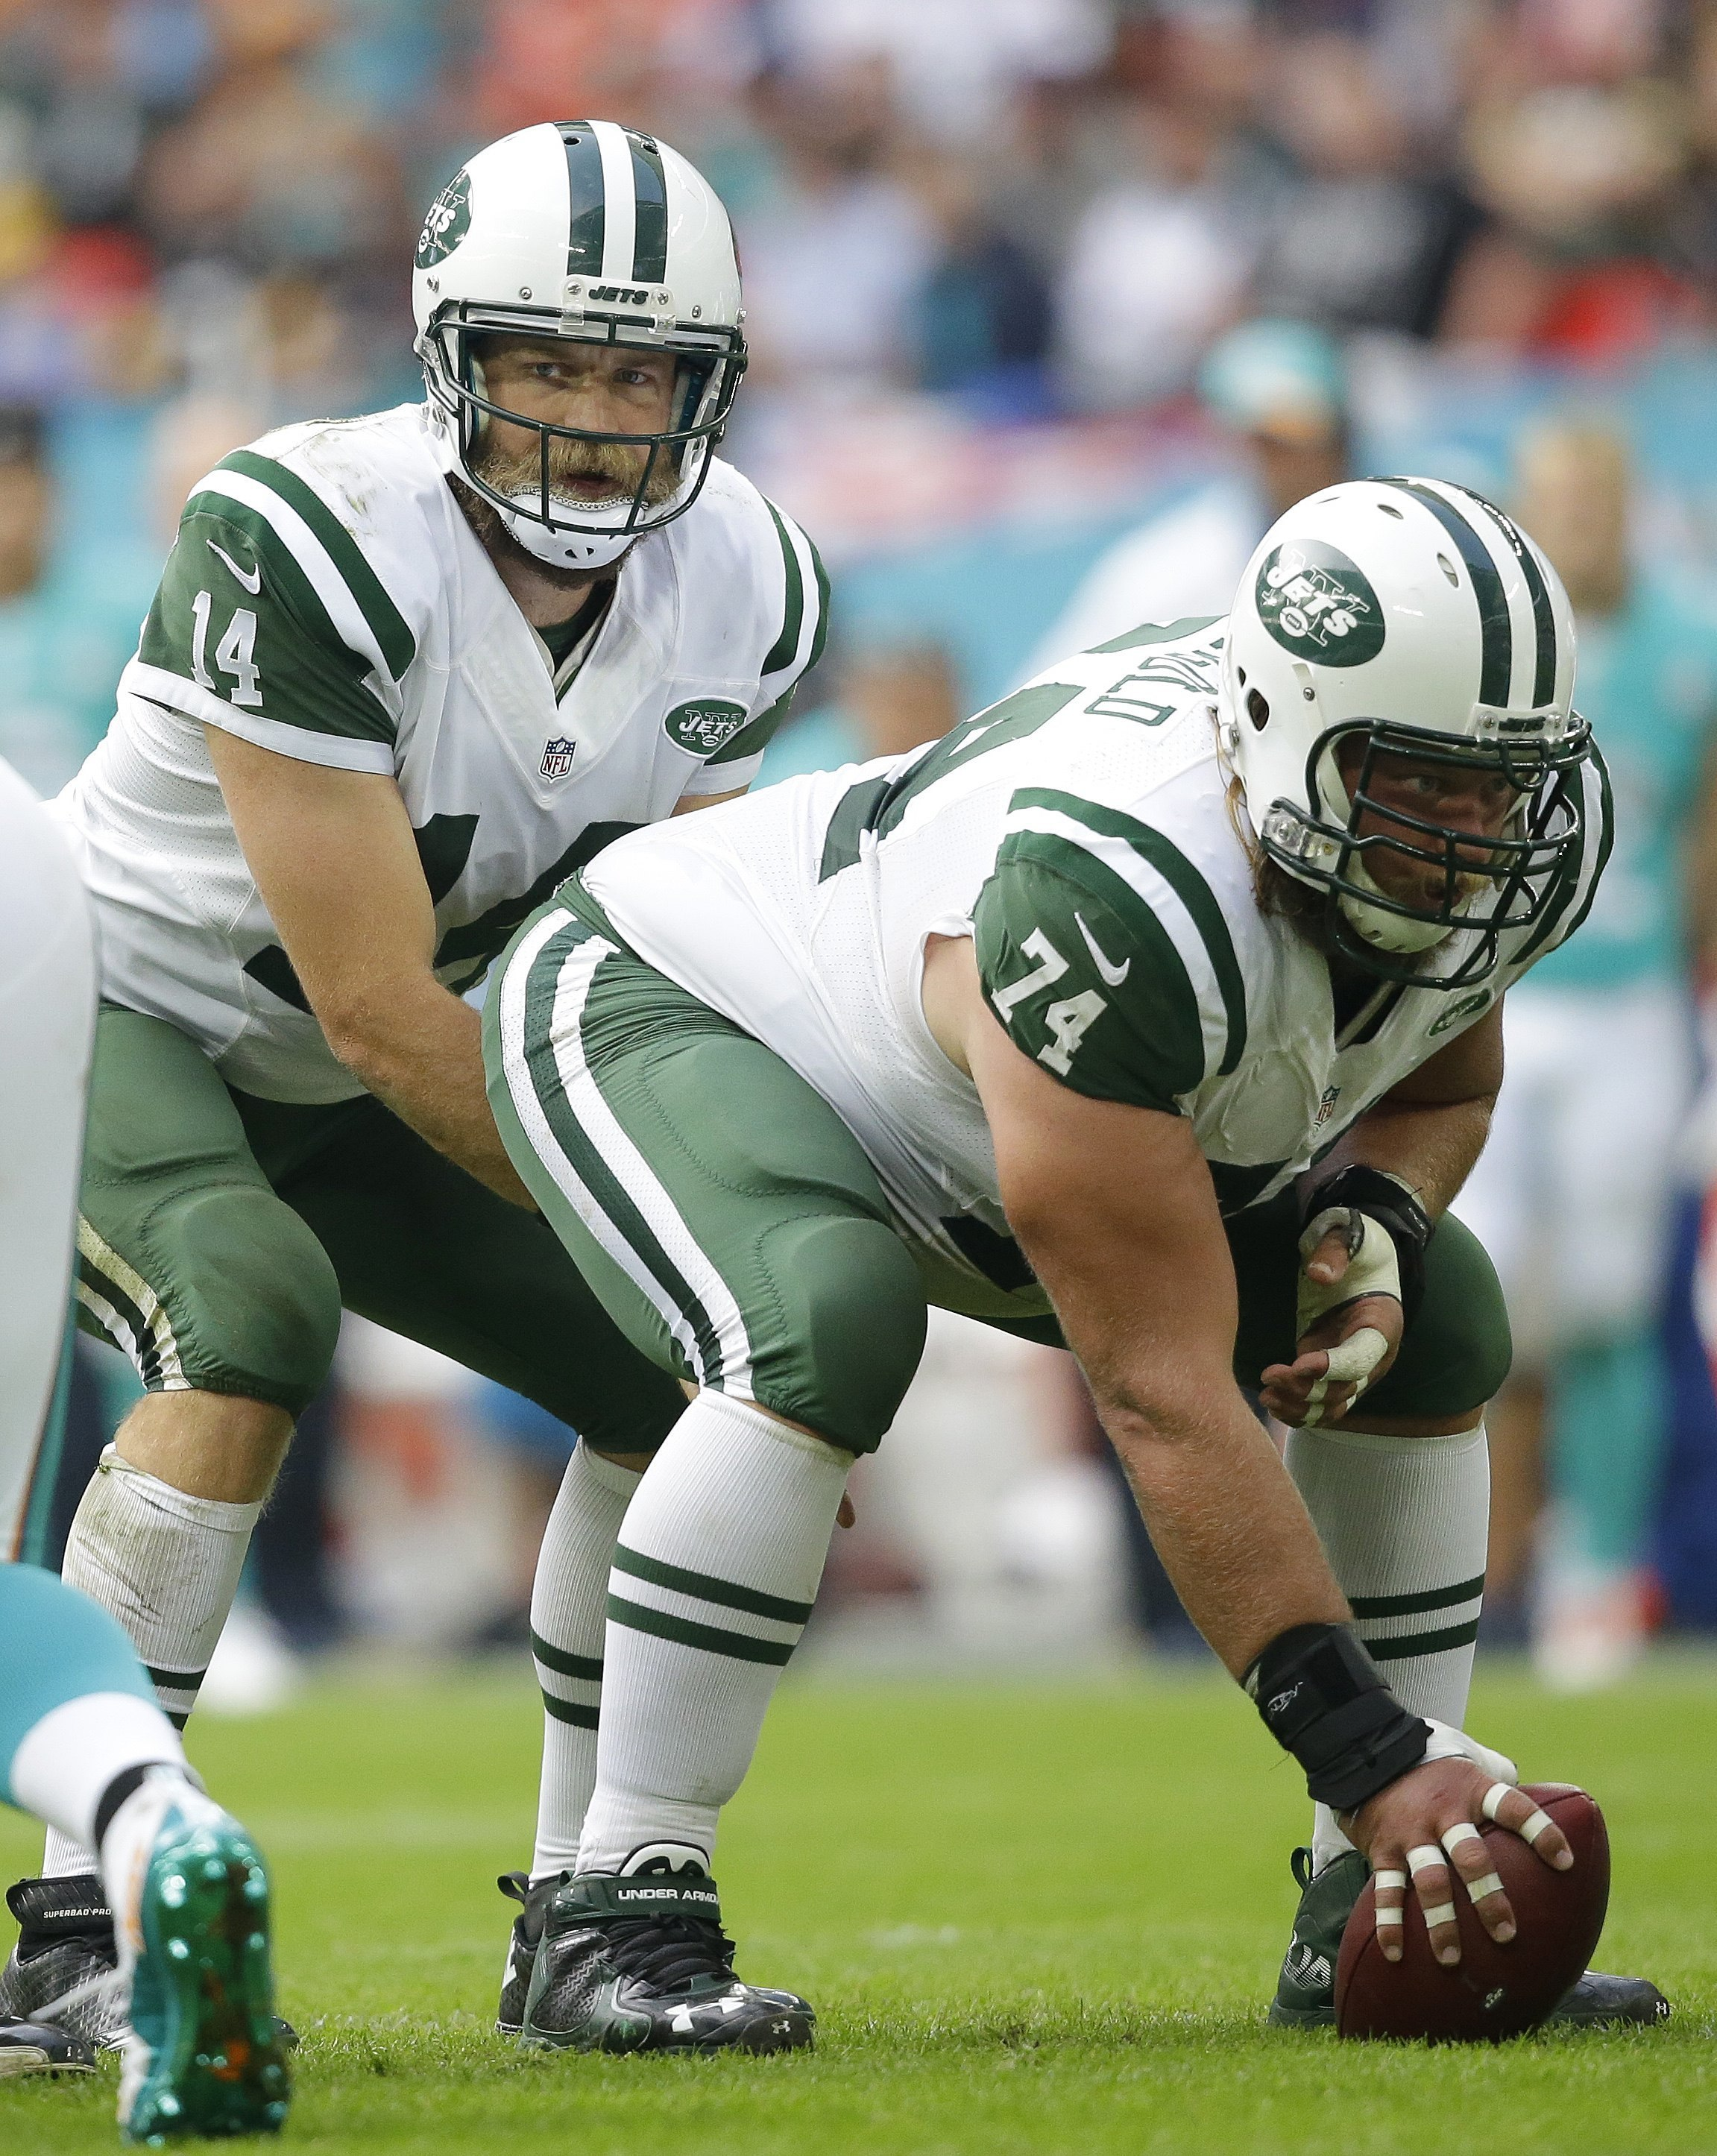 FILE - Sunday, Oct. 4, 2016 file photo, New York Jets' quarterback Ryan Fitzpatrick, left, prepares to take the ball from center Nick Mangold during an NFL football game against the Miami Dolphins at Wembley stadium in London. The New York Jets are placin